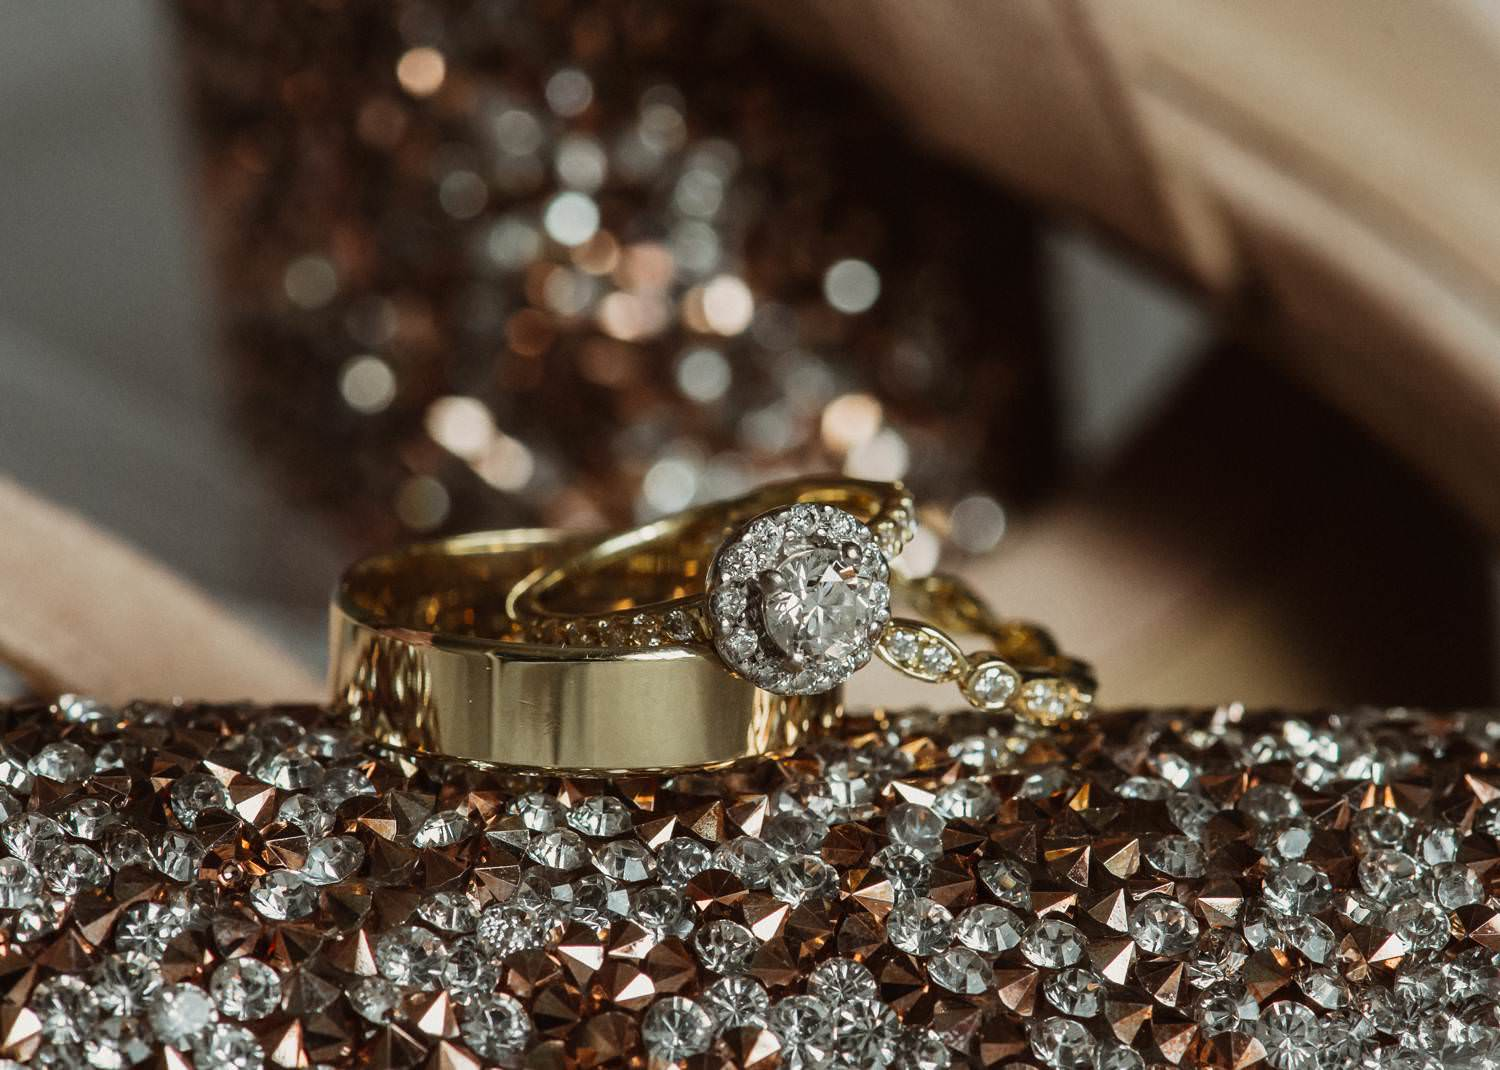 Wedding and Engagement rings on glittery surface.